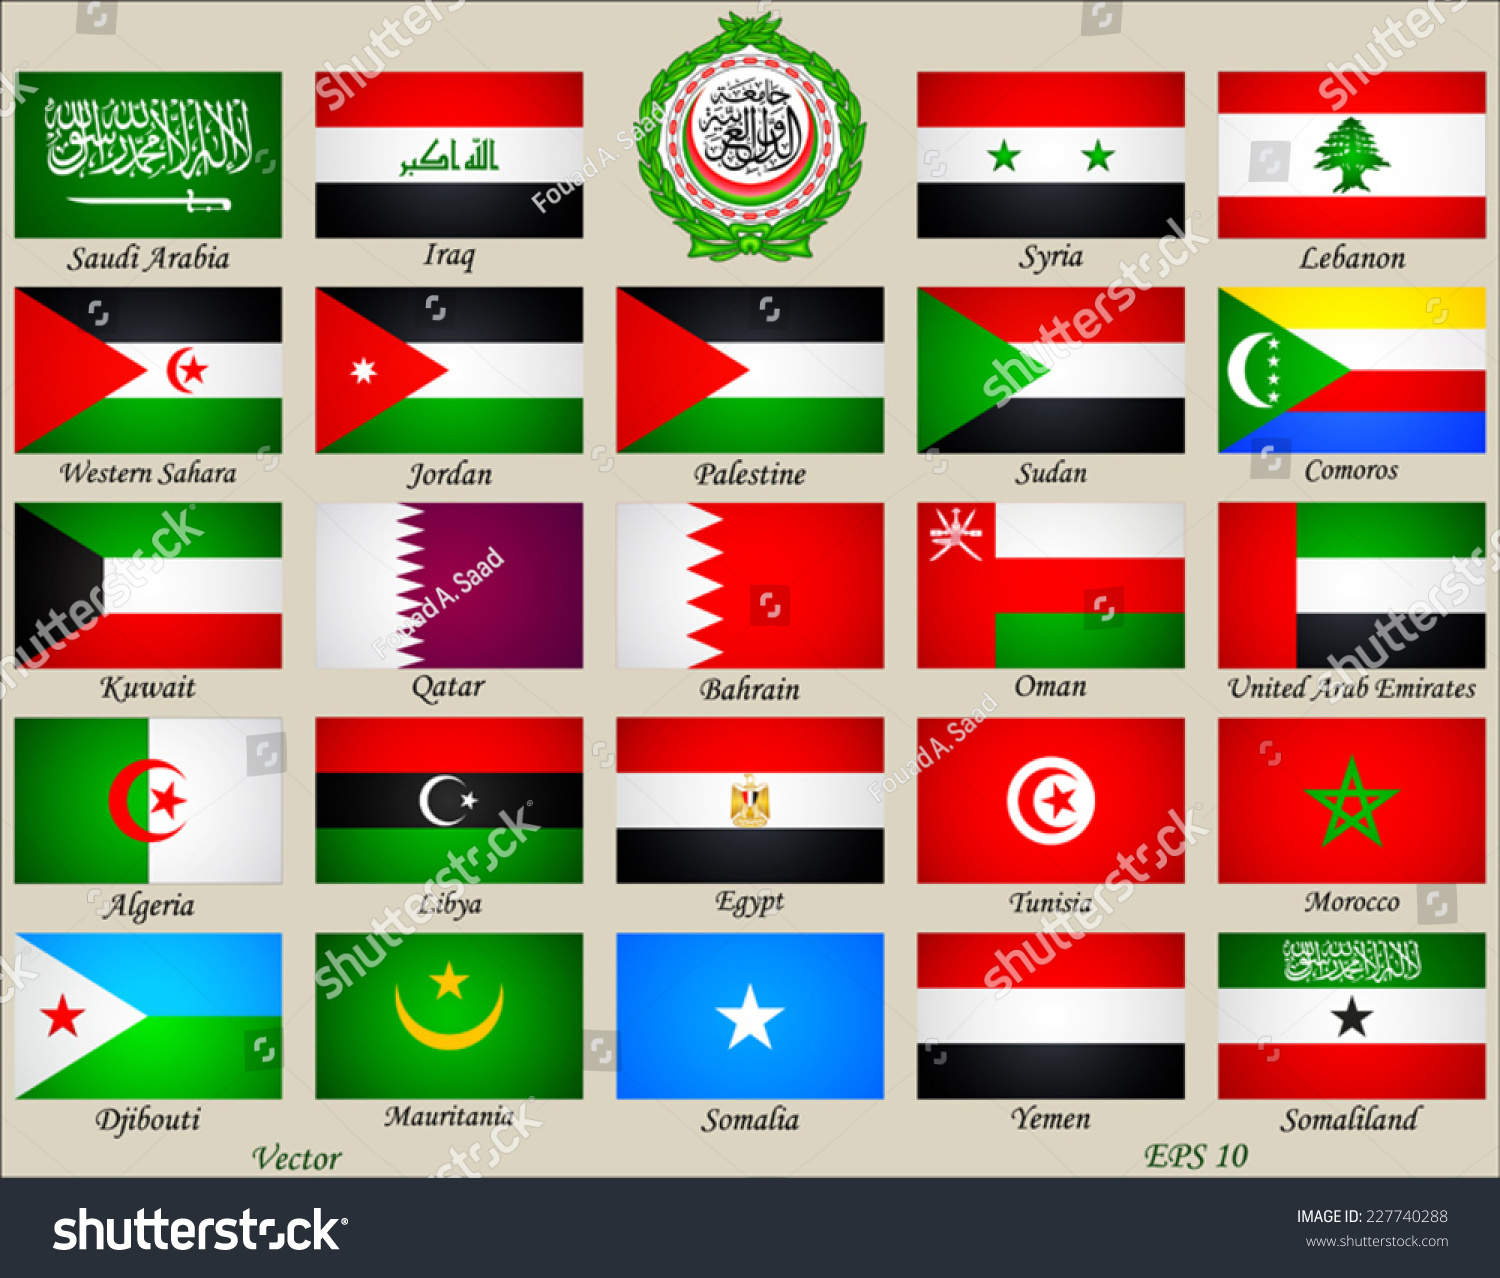 free dating site arab country flags